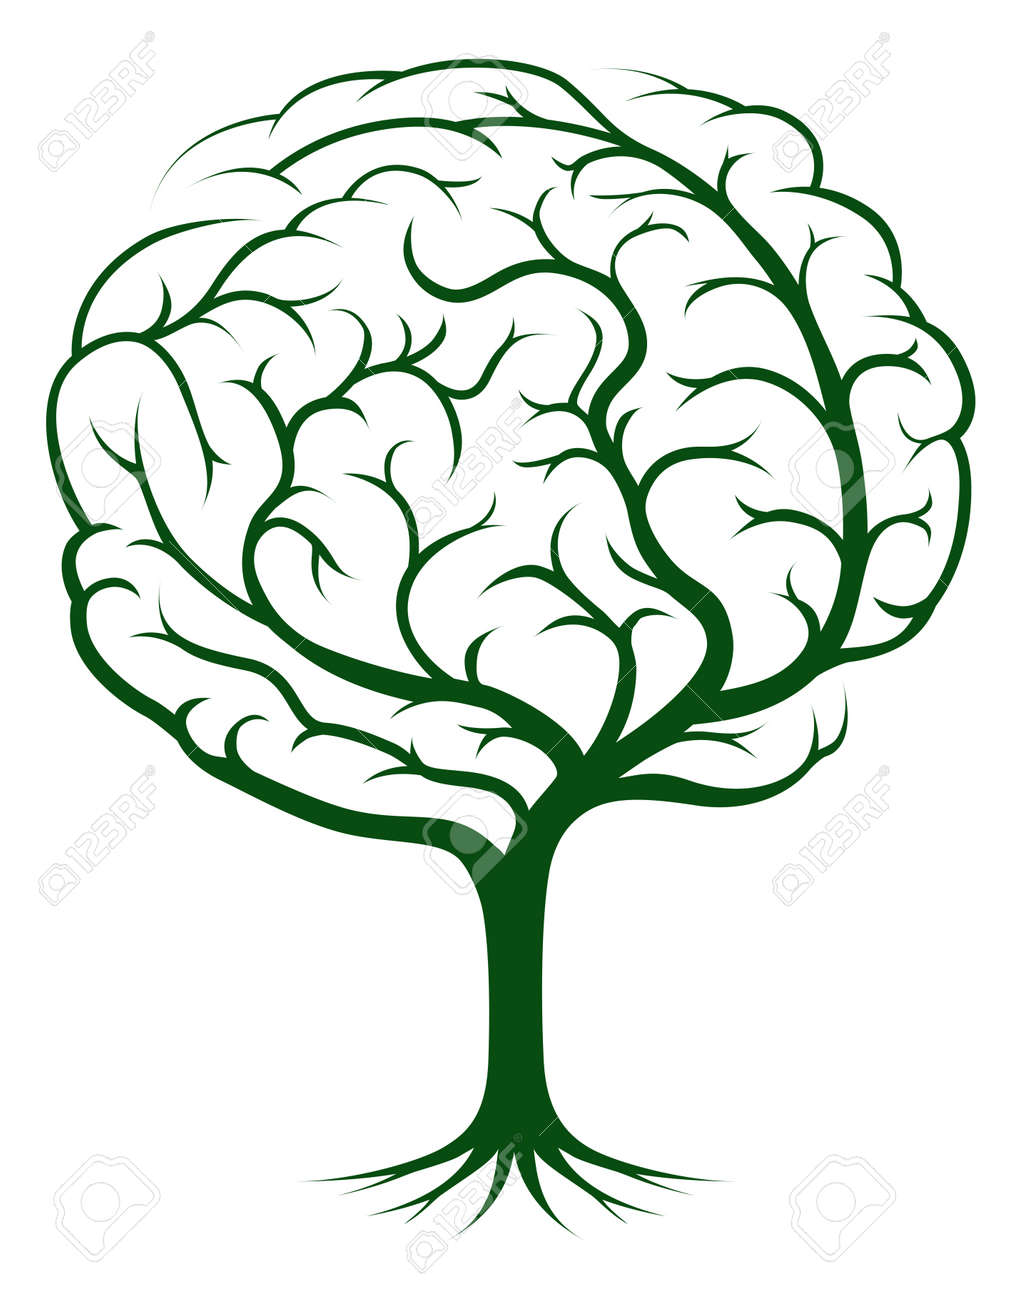 Image result for trees and brains